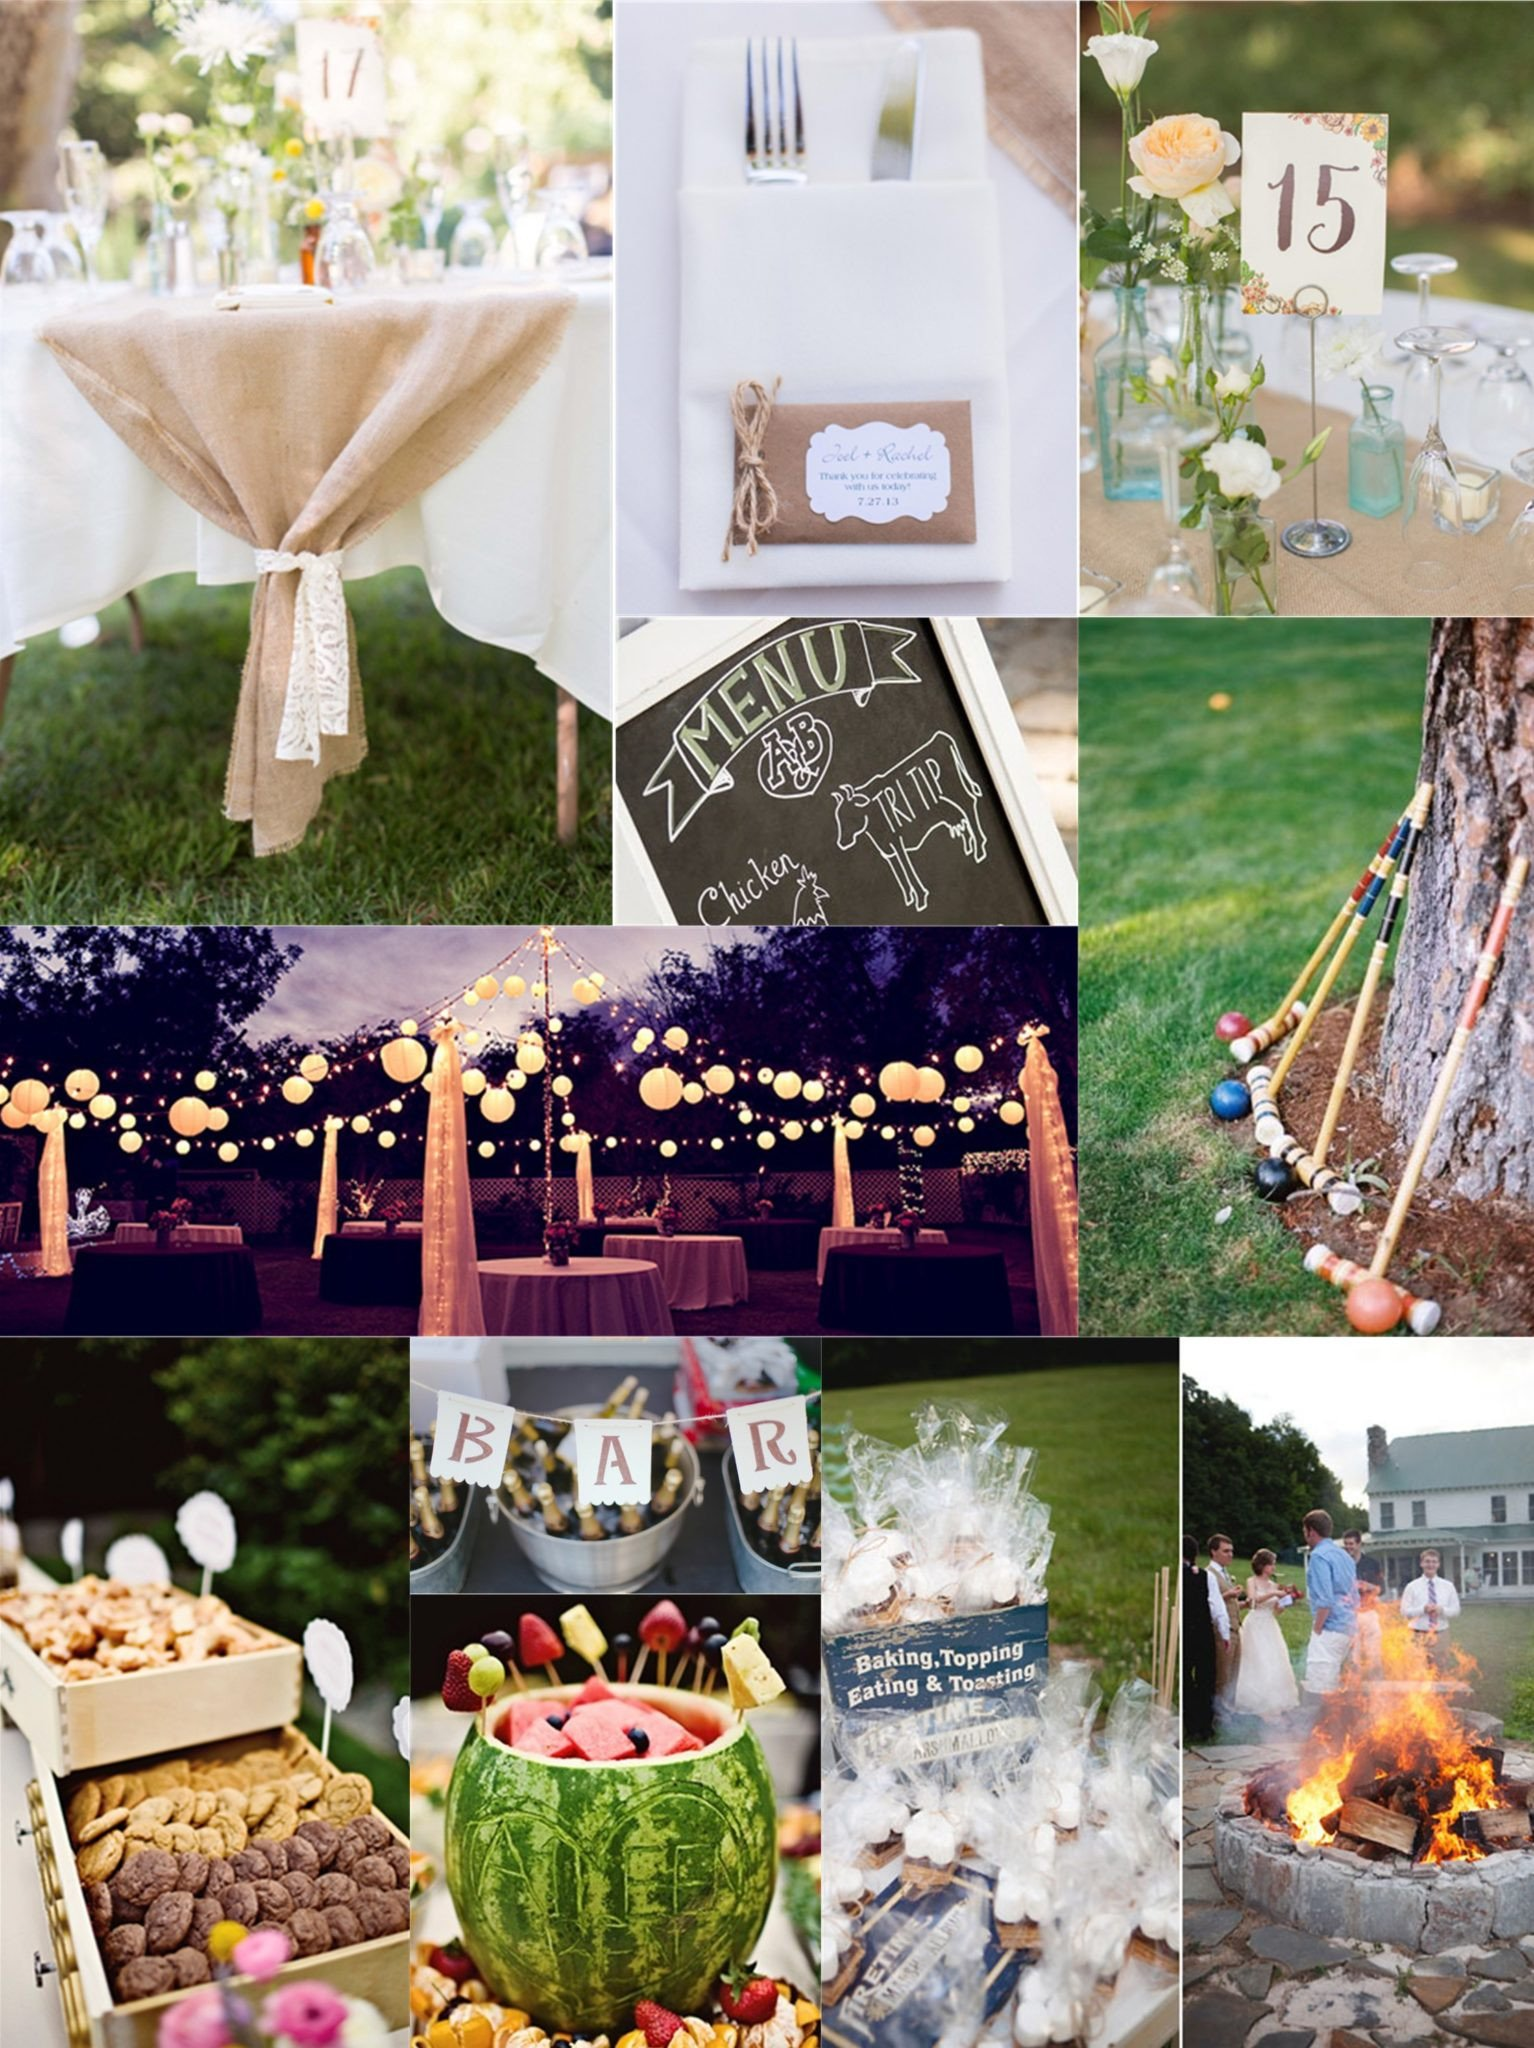 Backyard Decor On A Budget Fresh Essential Guide to A Backyard Wedding On A Bud